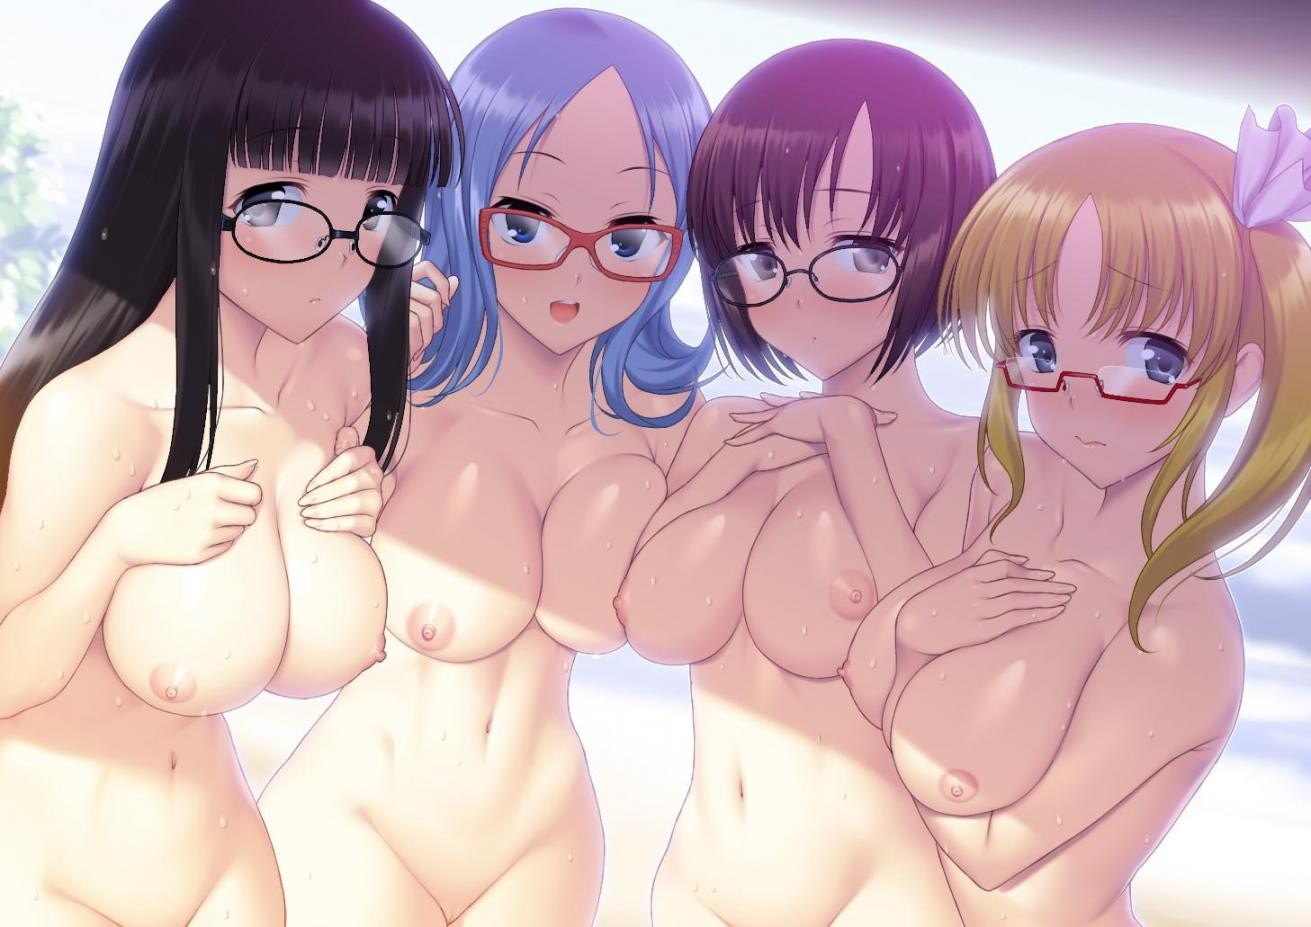 Thirty Hentai Drawings Of Girls With Glasses